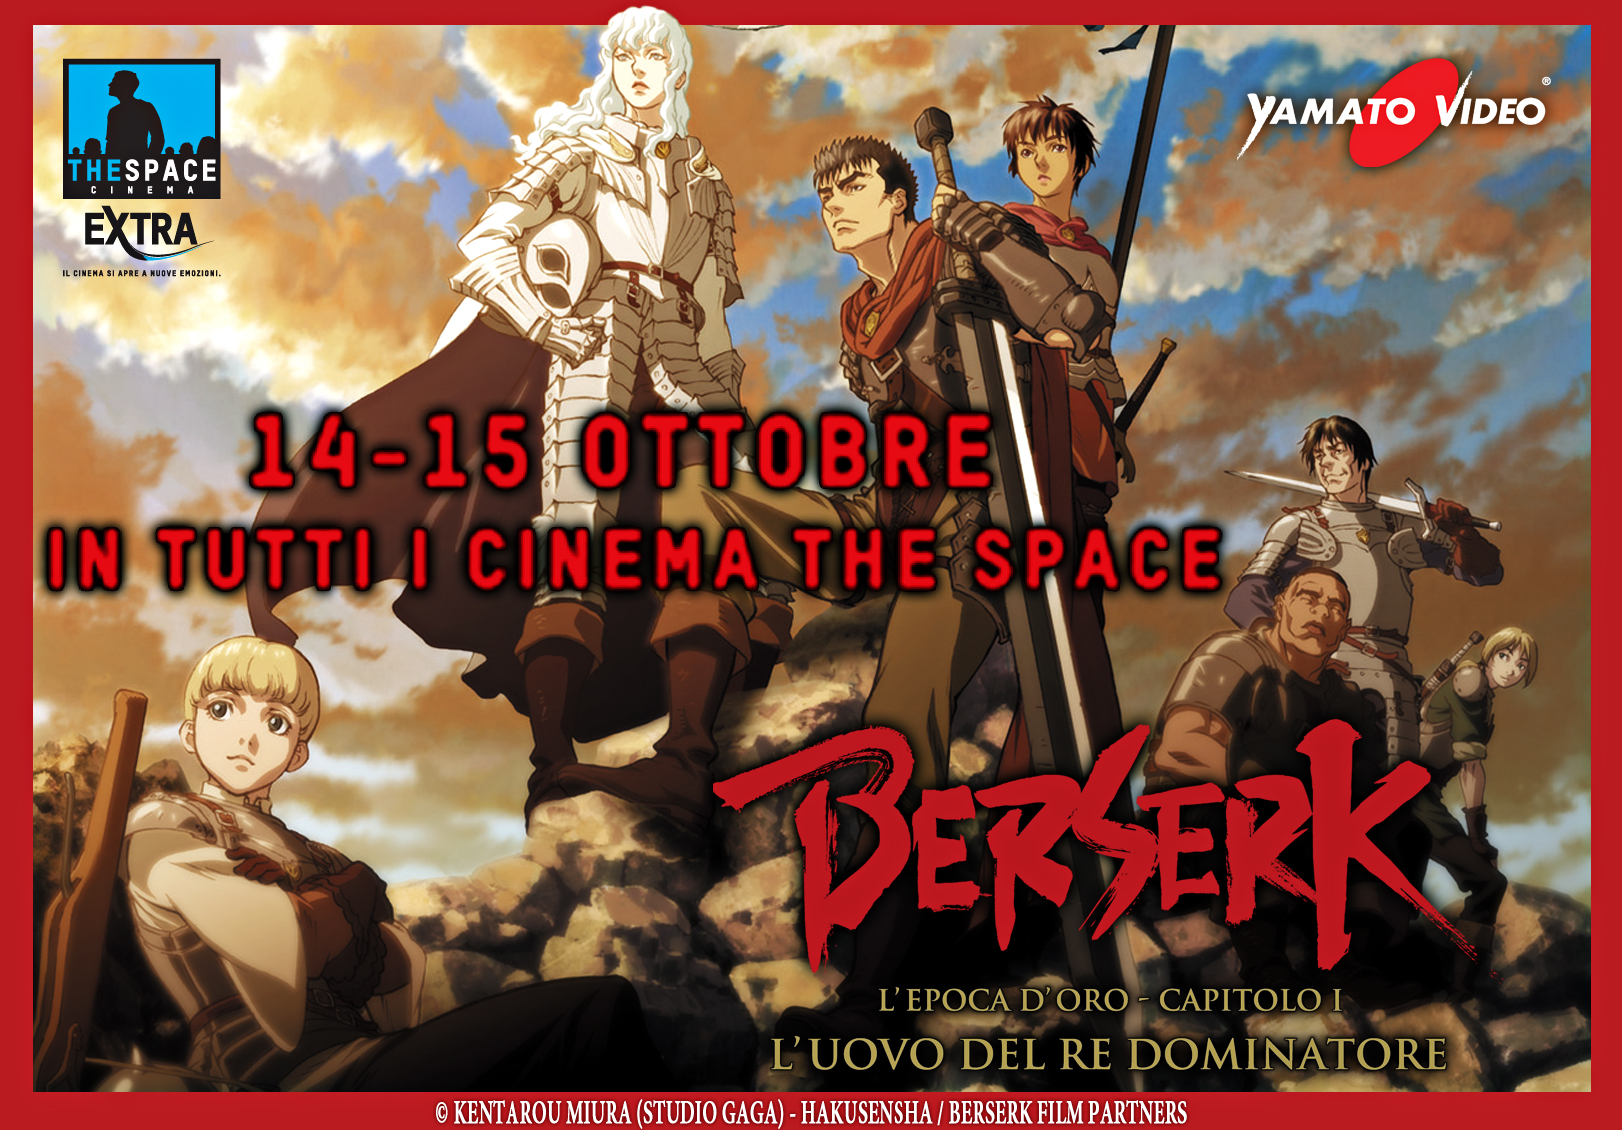 berserk l'uovo del re conquistatore al cinema